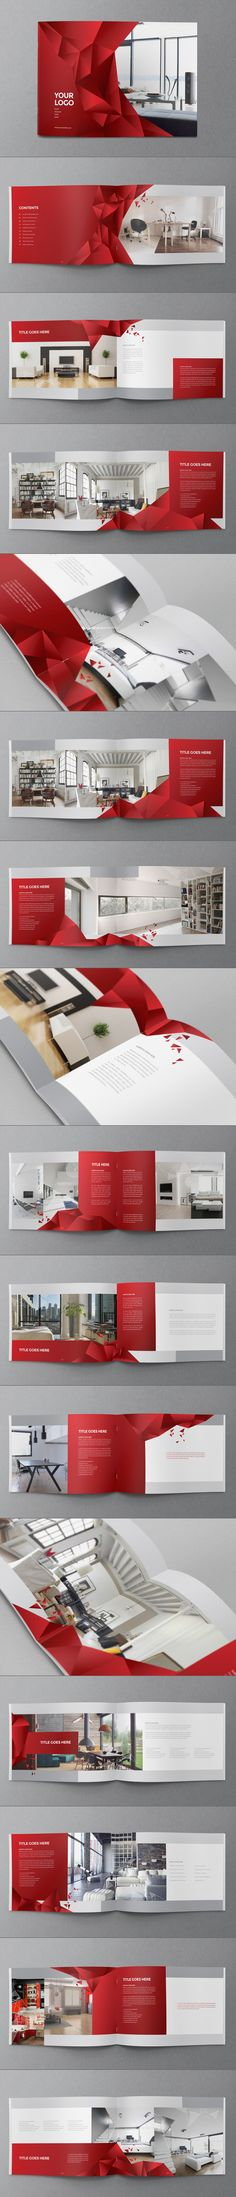 interior brochure catalog design | indesign templates, brochures